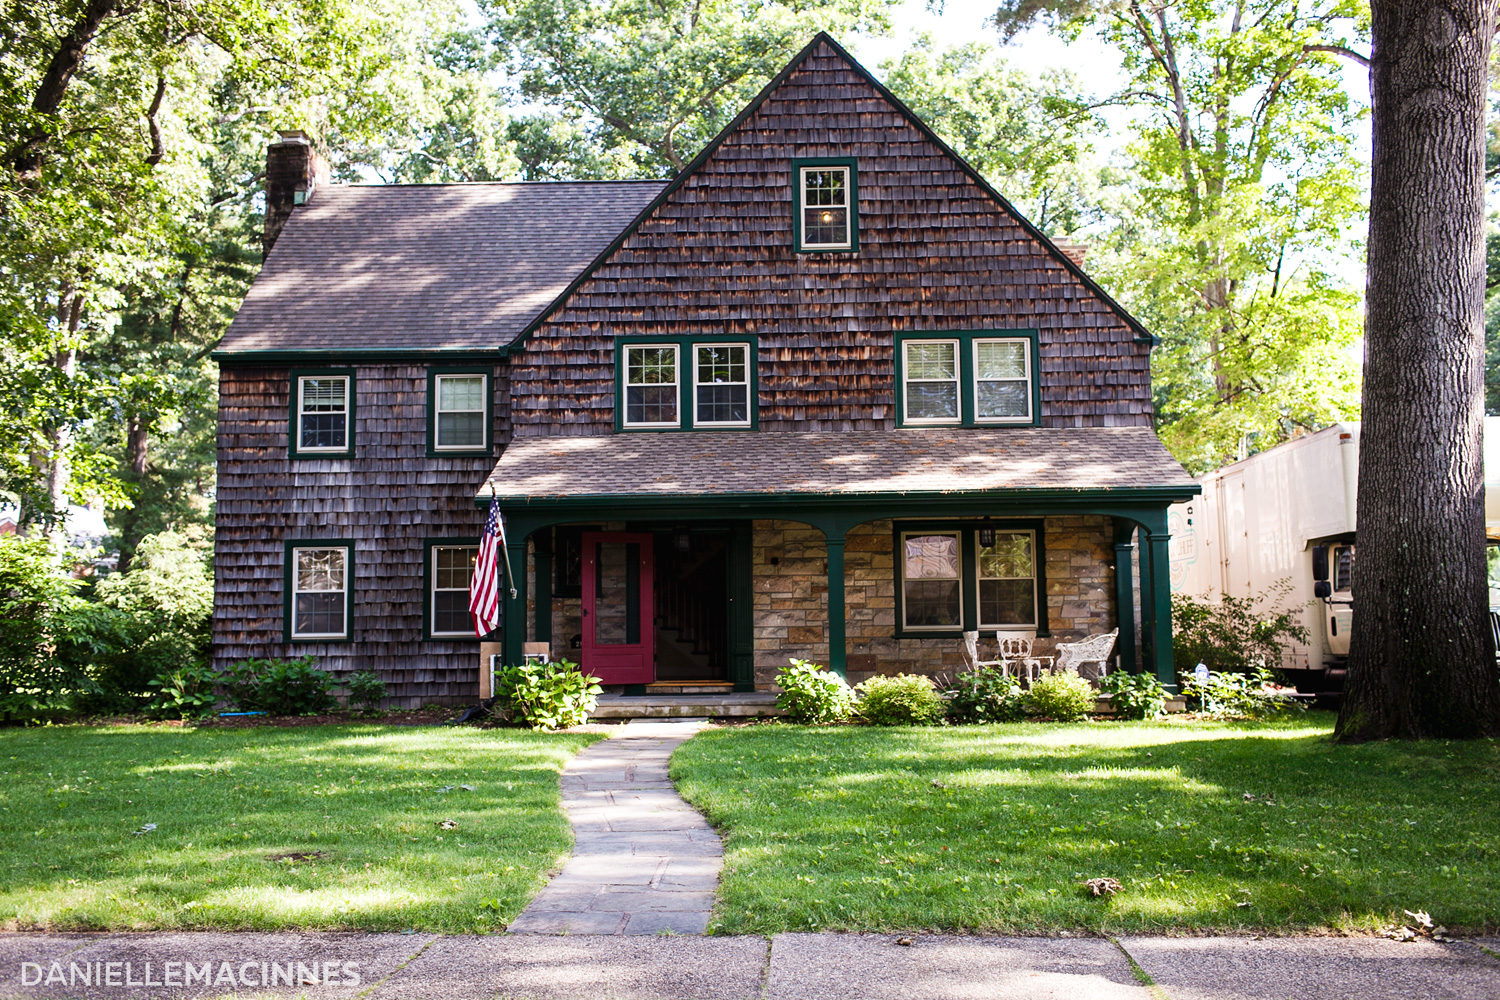 brown shingled House with red door and flag out front